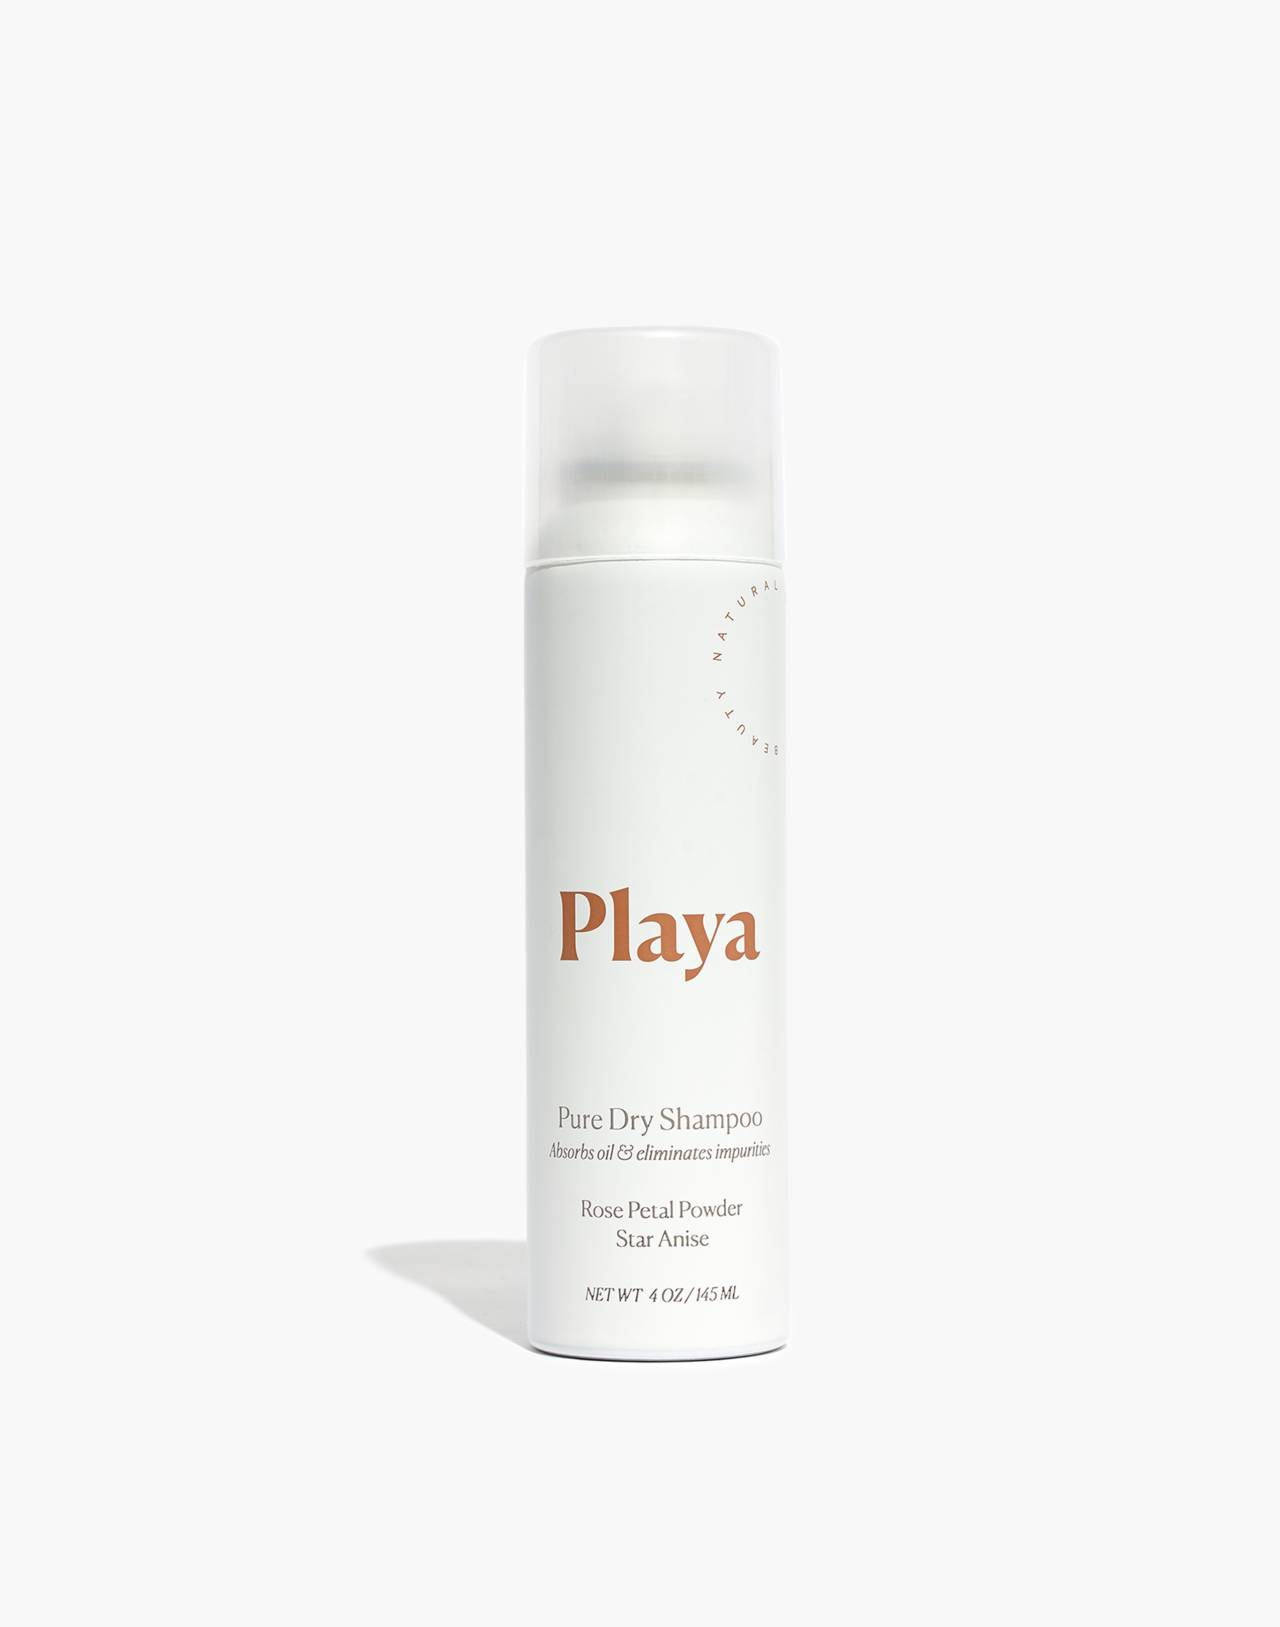 Playa Pure Dry Shampoo in rose petal and star anise image 1